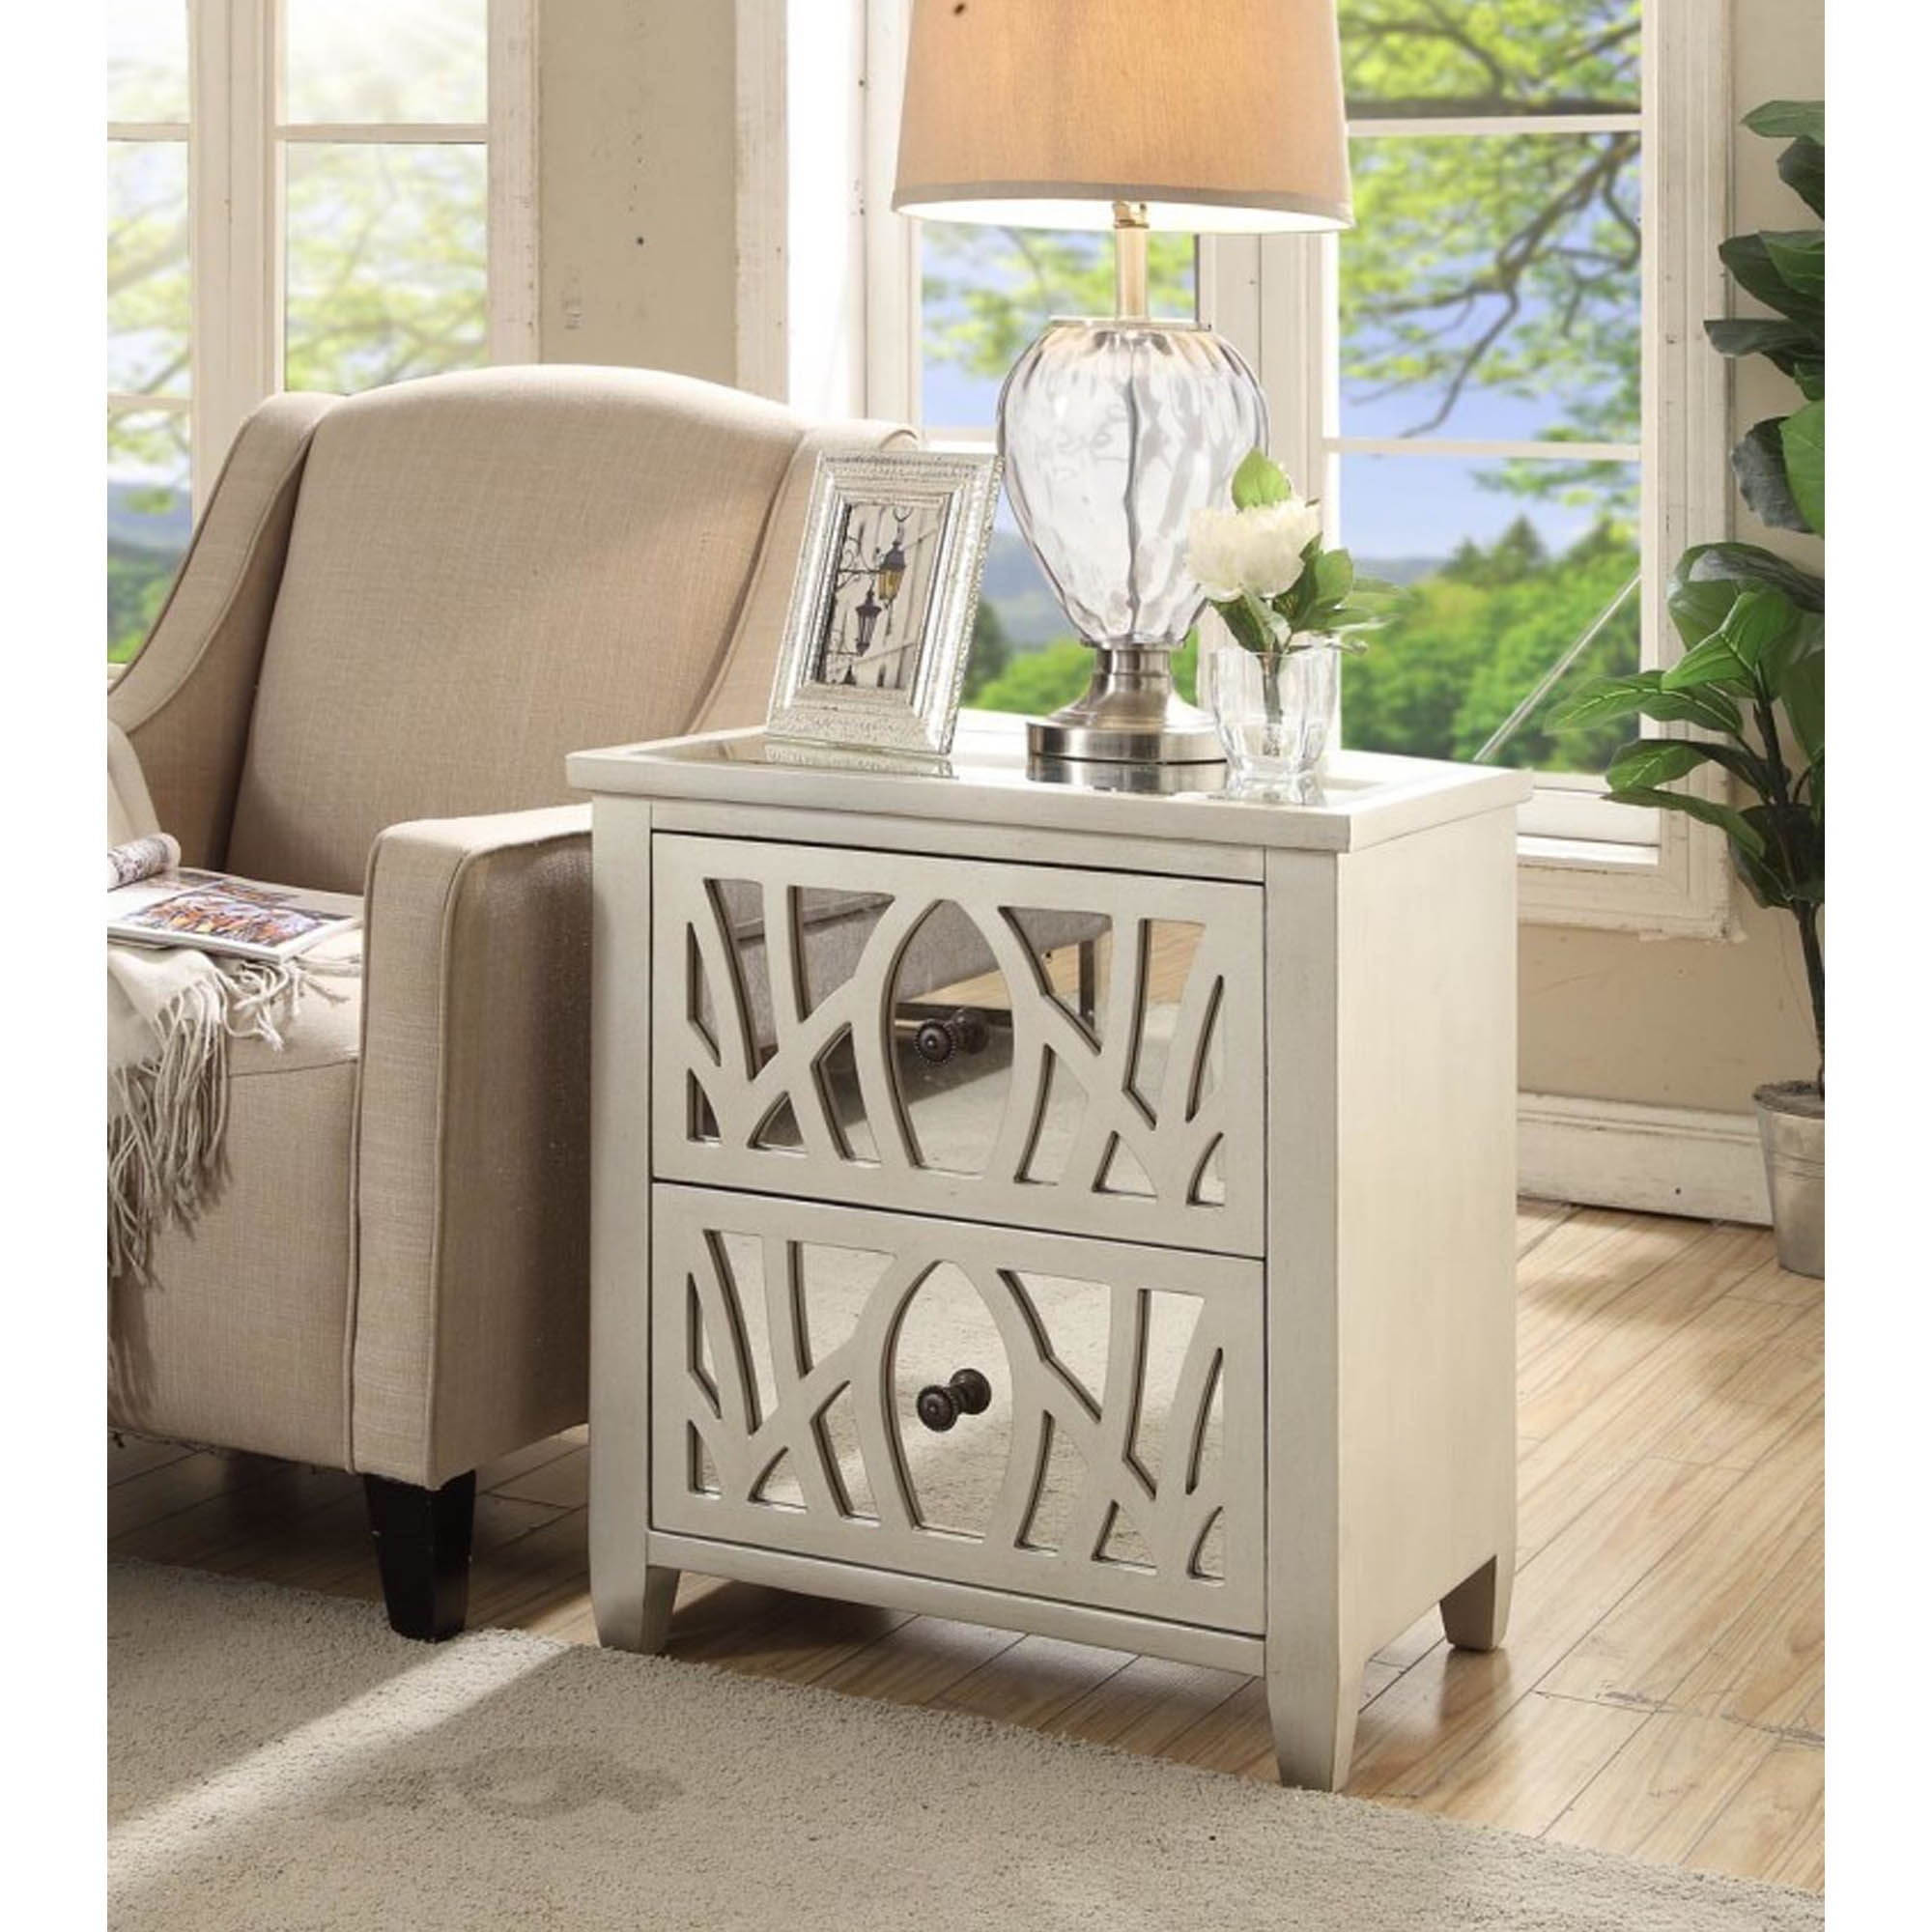 best side popular the table mirror mirrored bedside ideas